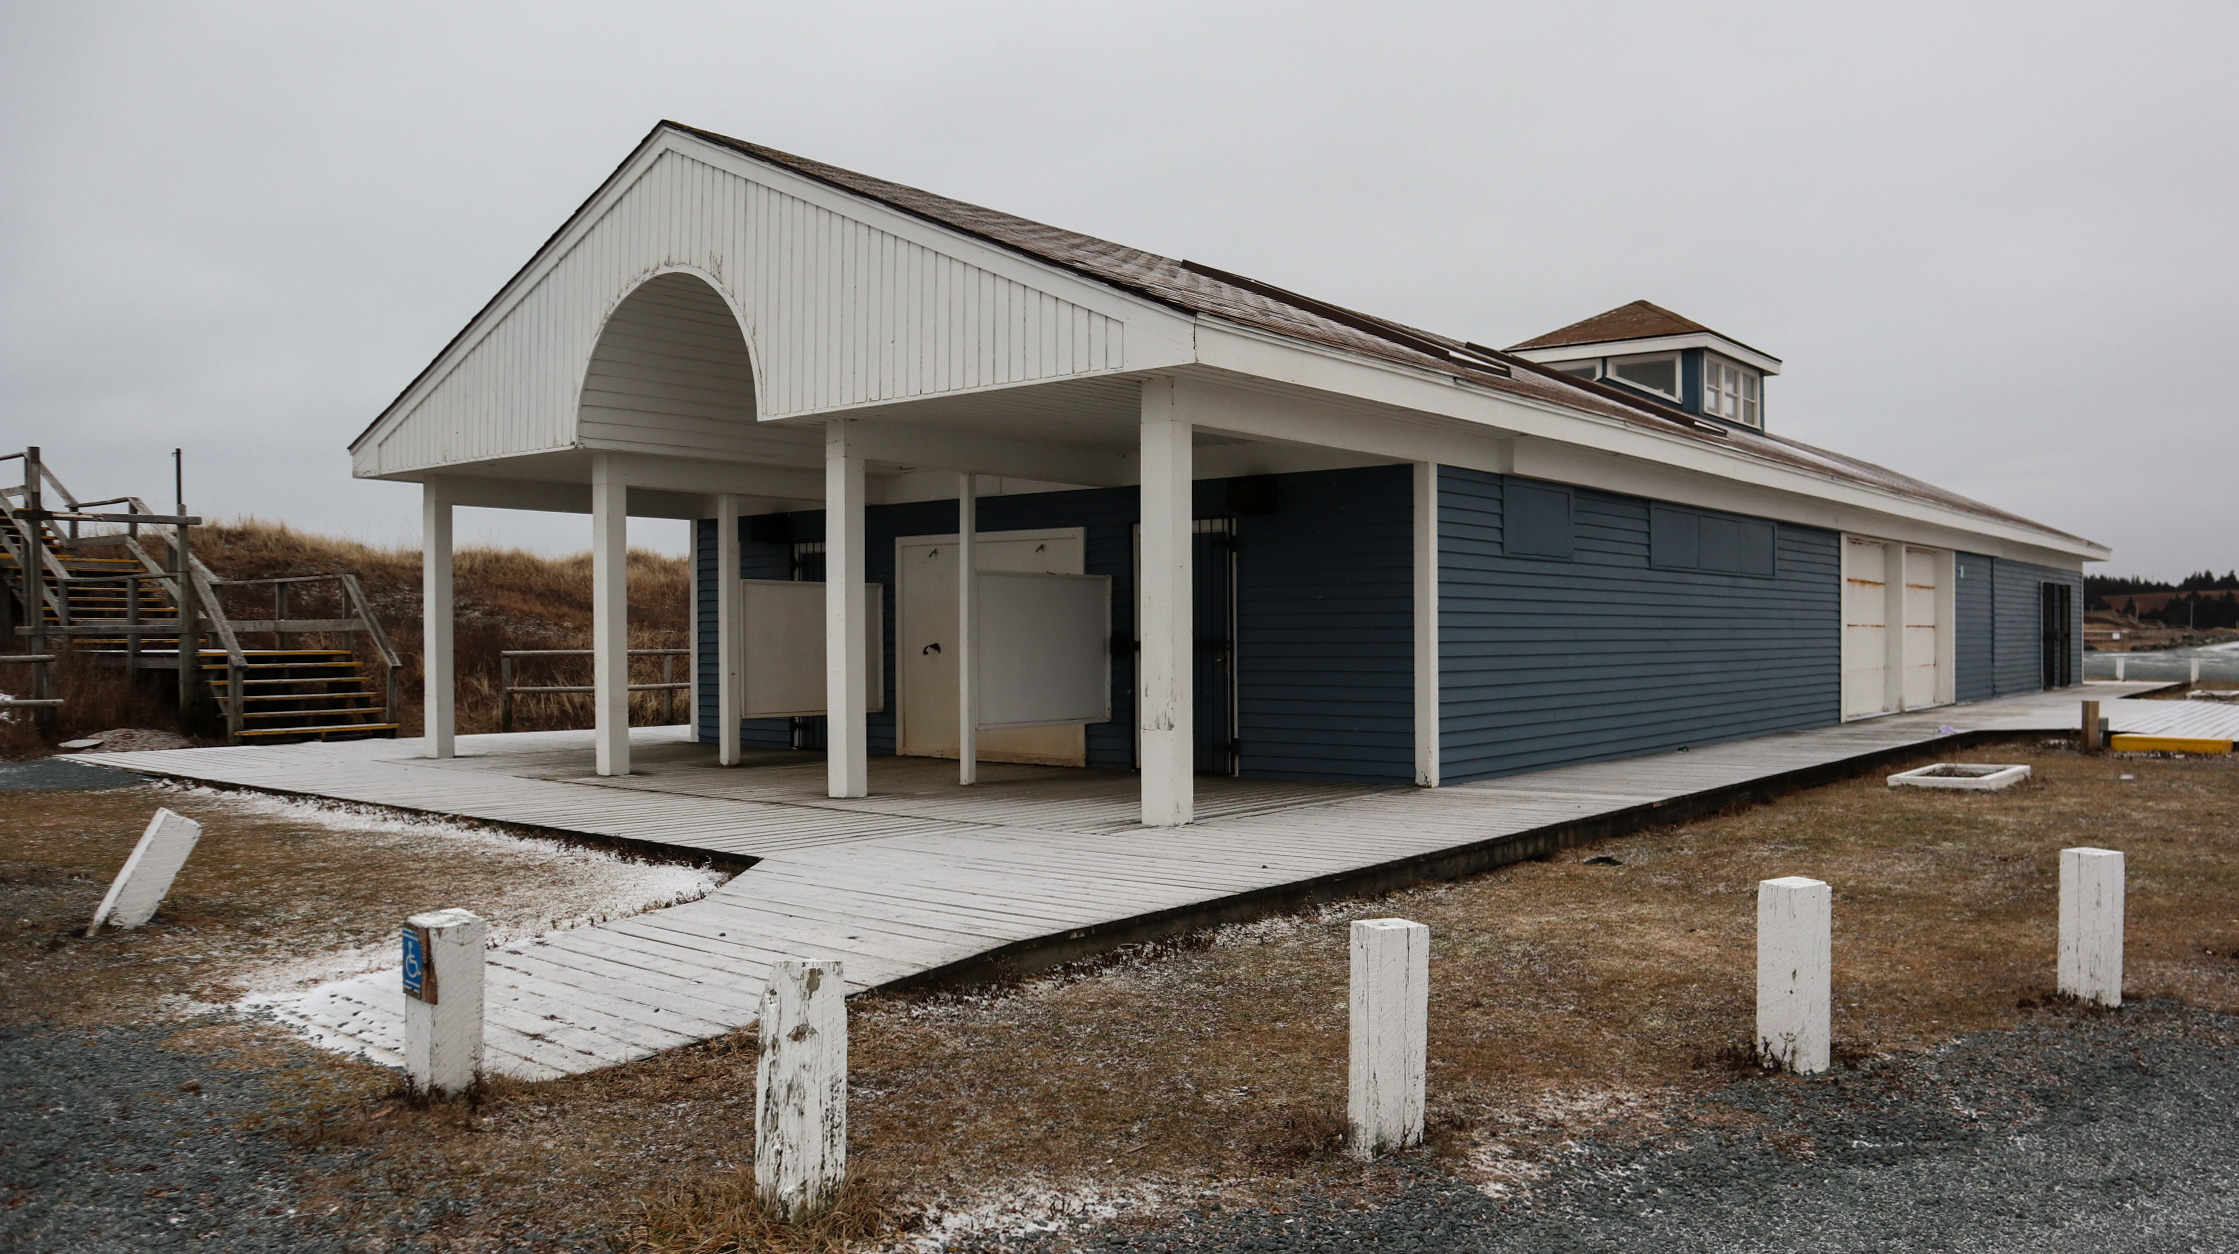 The old building at Lawrencetown Beach is where the current toilets and change rooms are. This building will be demolished when the surfer's beach area is constructed.